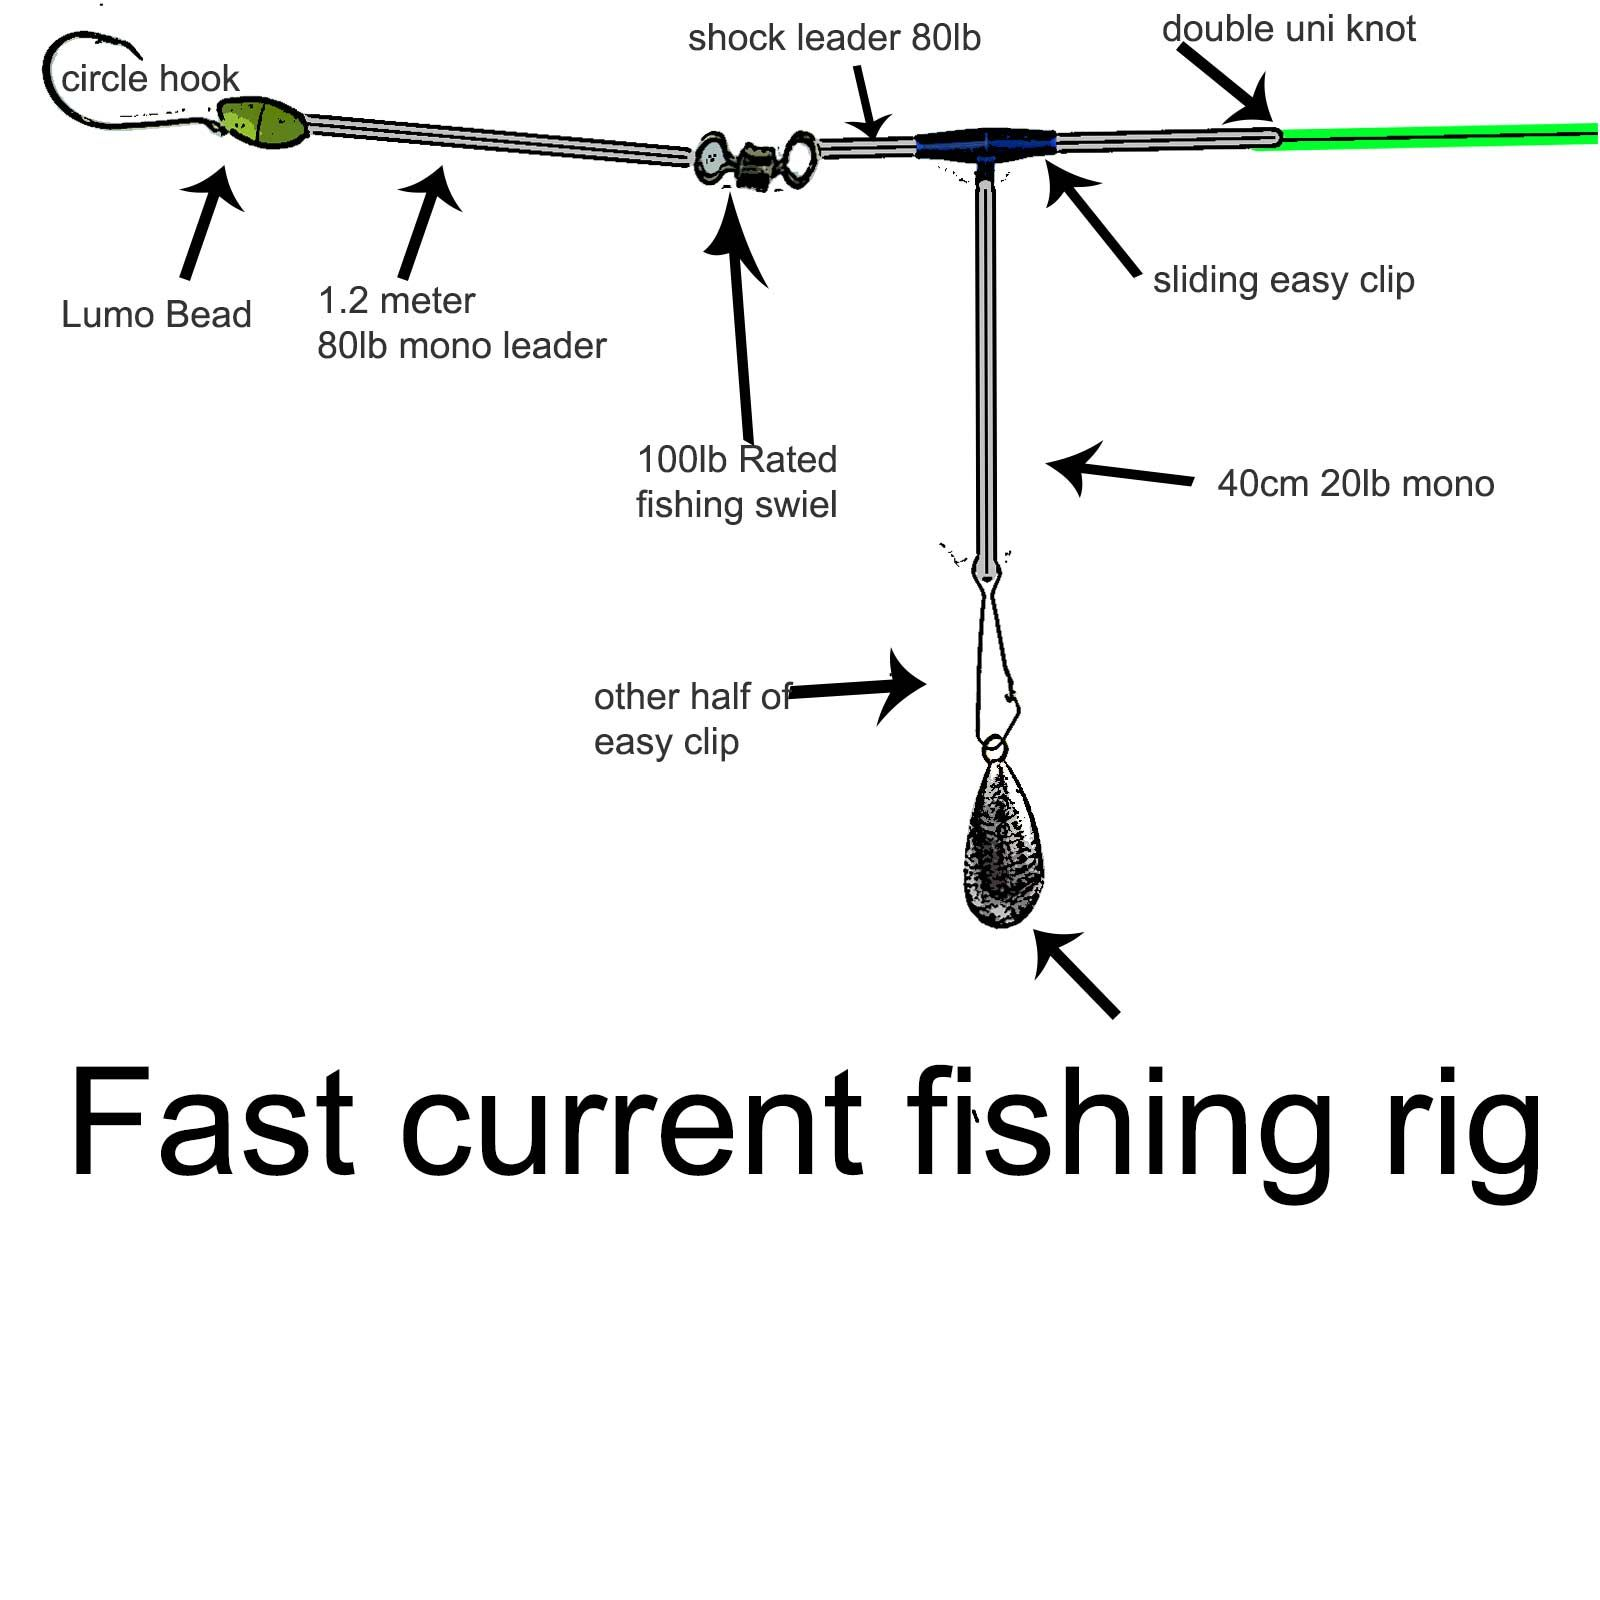 western port rig diagram tie running rig snapper fishing